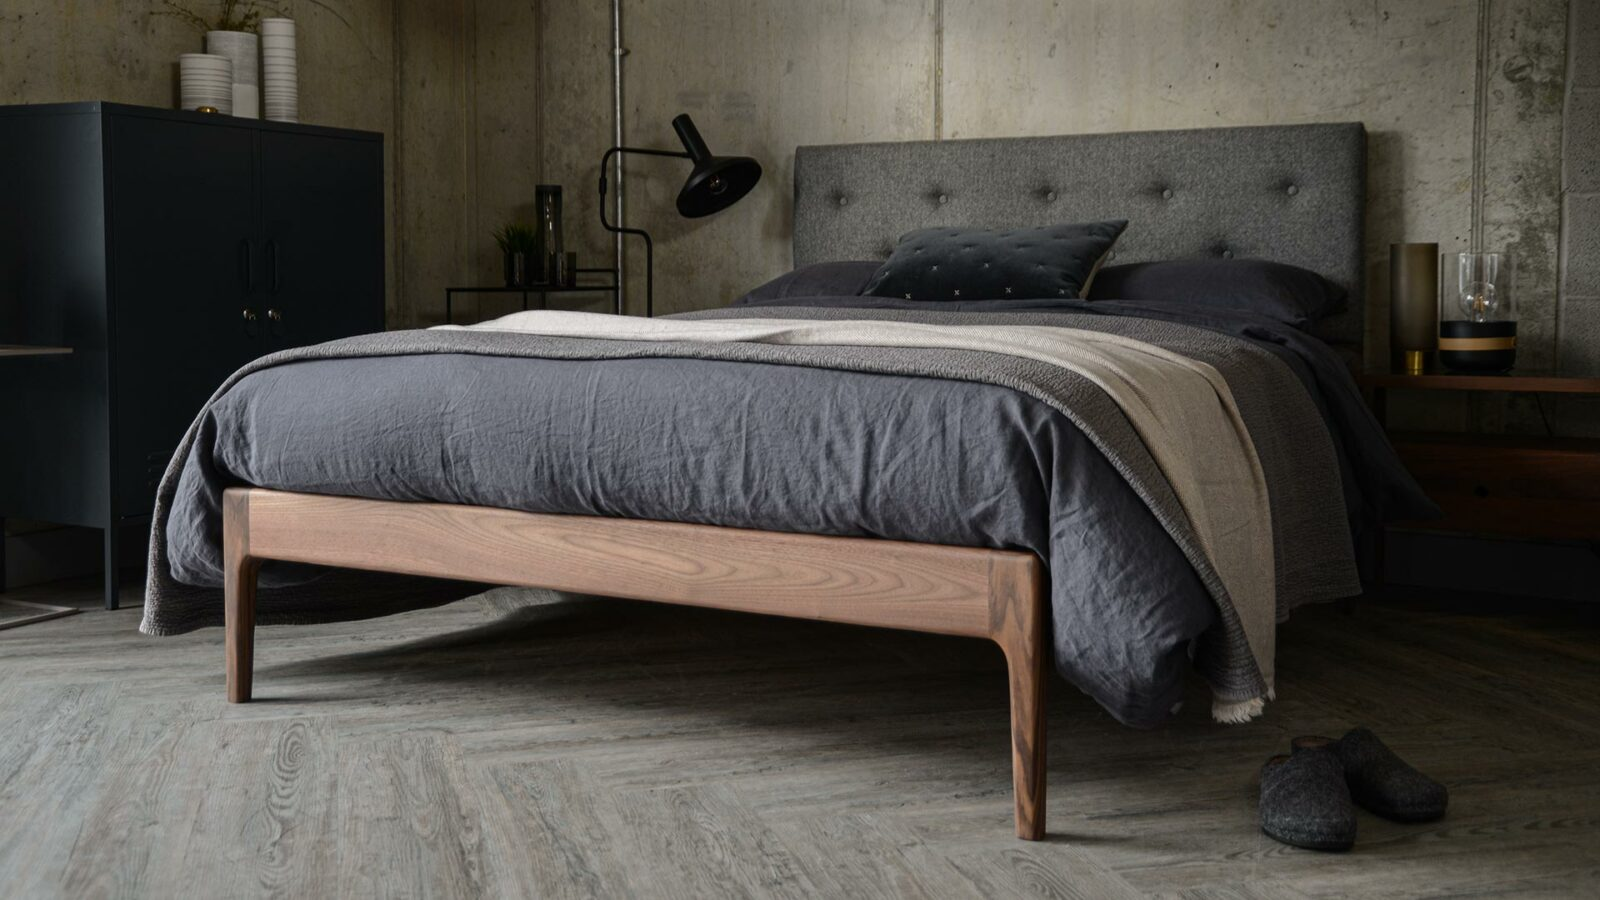 The Bloomsbury a mid-century style solid wooden bed with comfy-cosy upholstered headboard